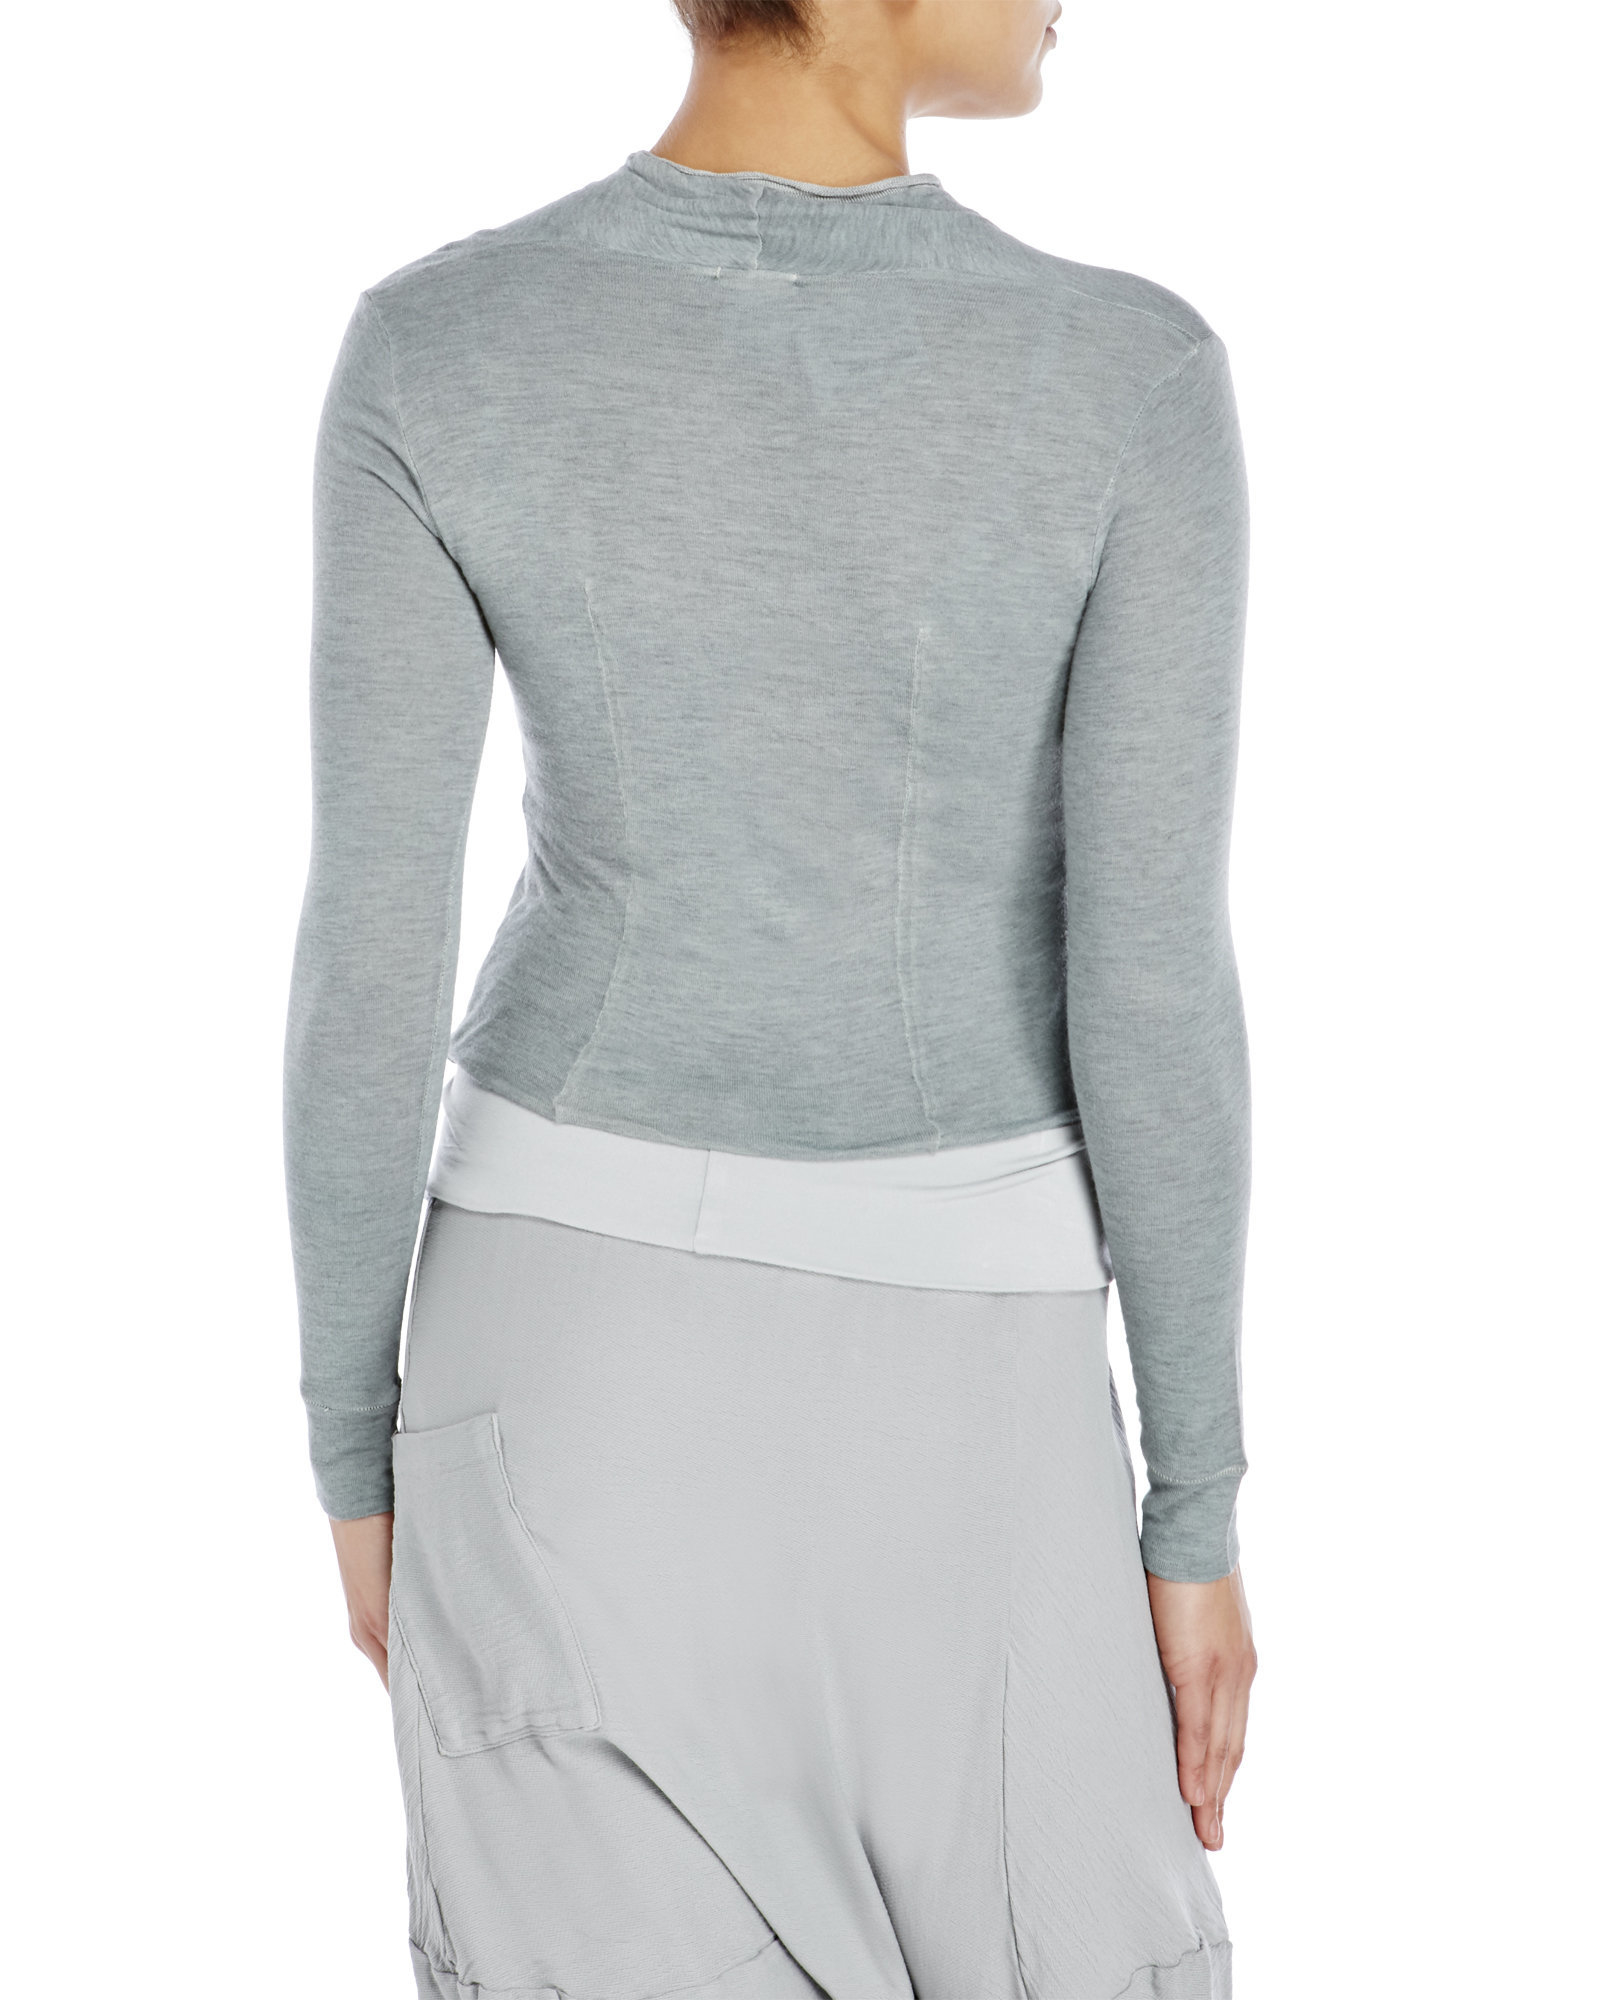 Transit Cropped Cardigan in Gray | Lyst